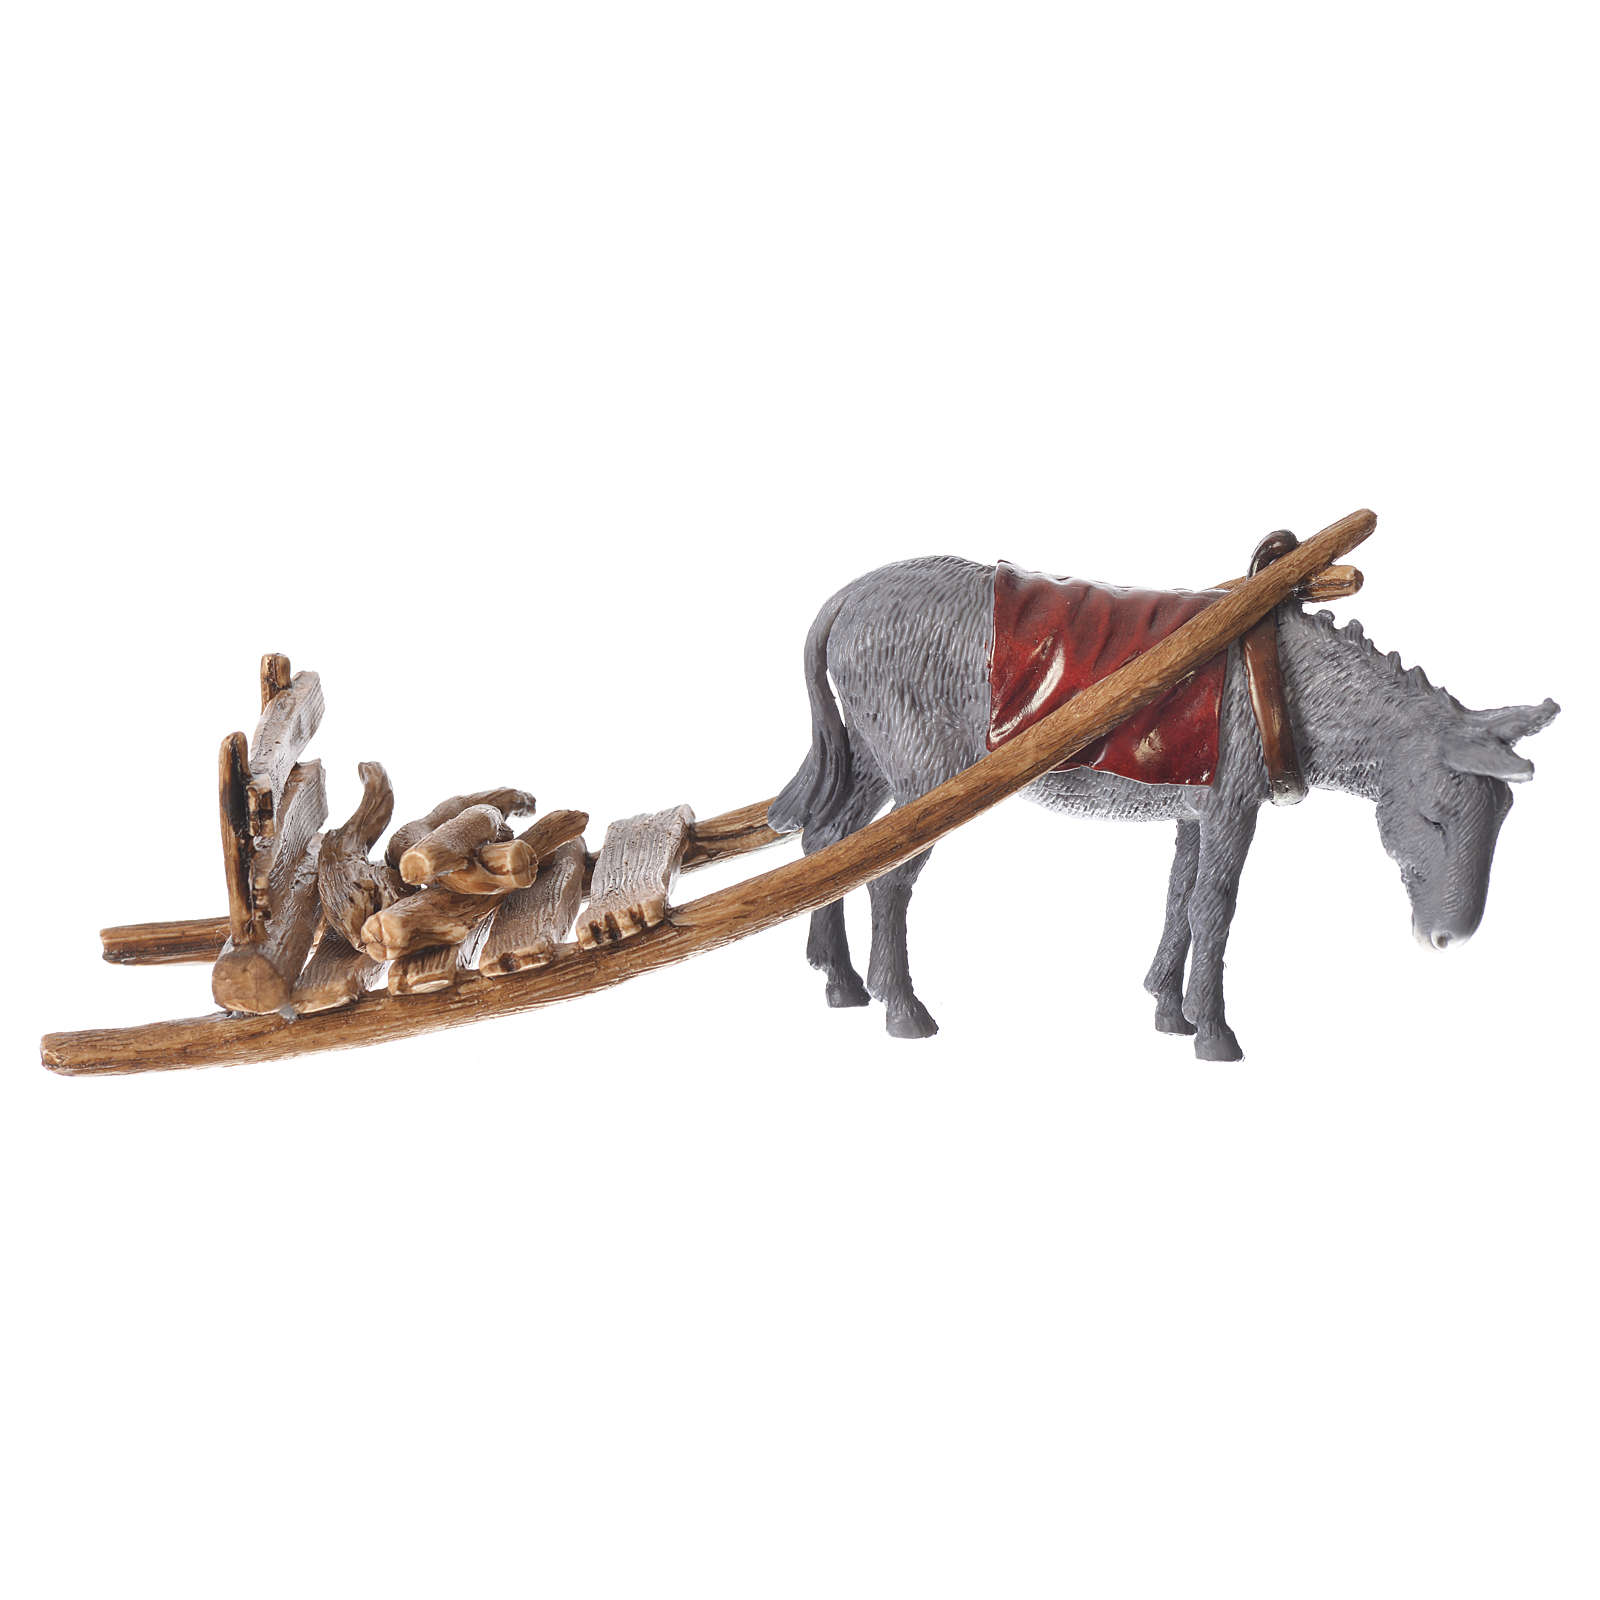 Donkey with cart, figurine for nativities of 10cm by Moranduzzo 4